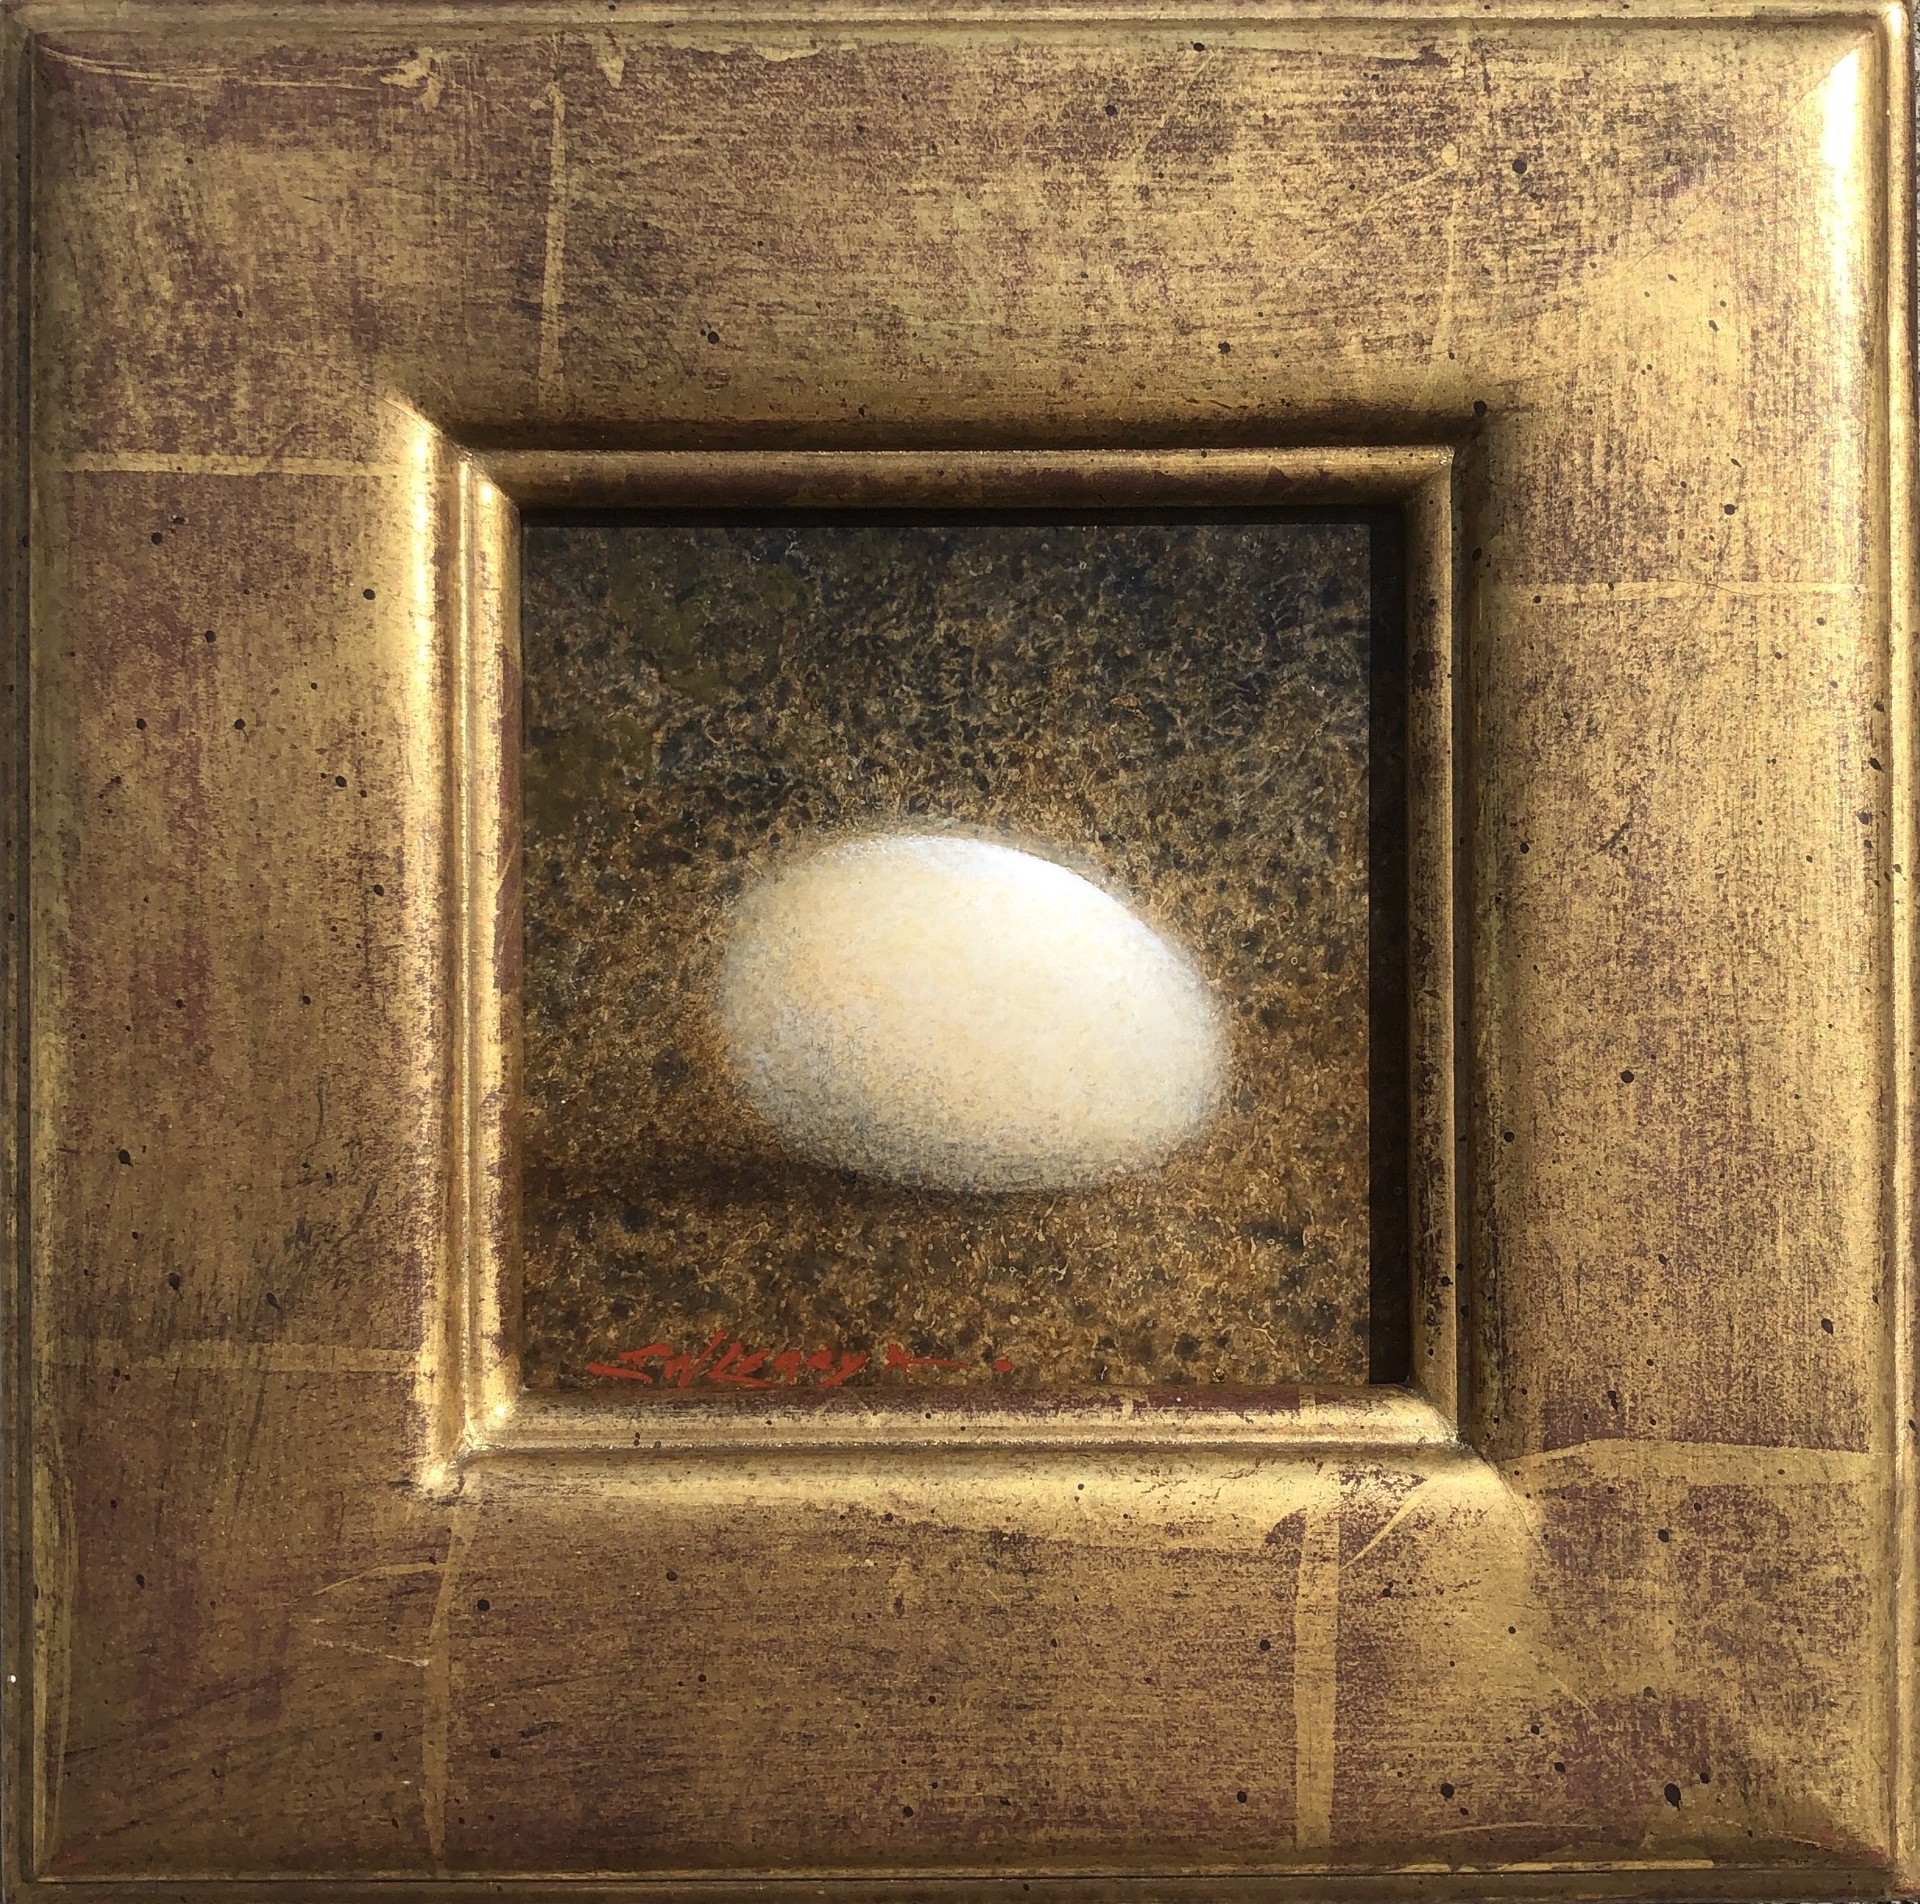 One Lovely Egg by Elizabeth Leary